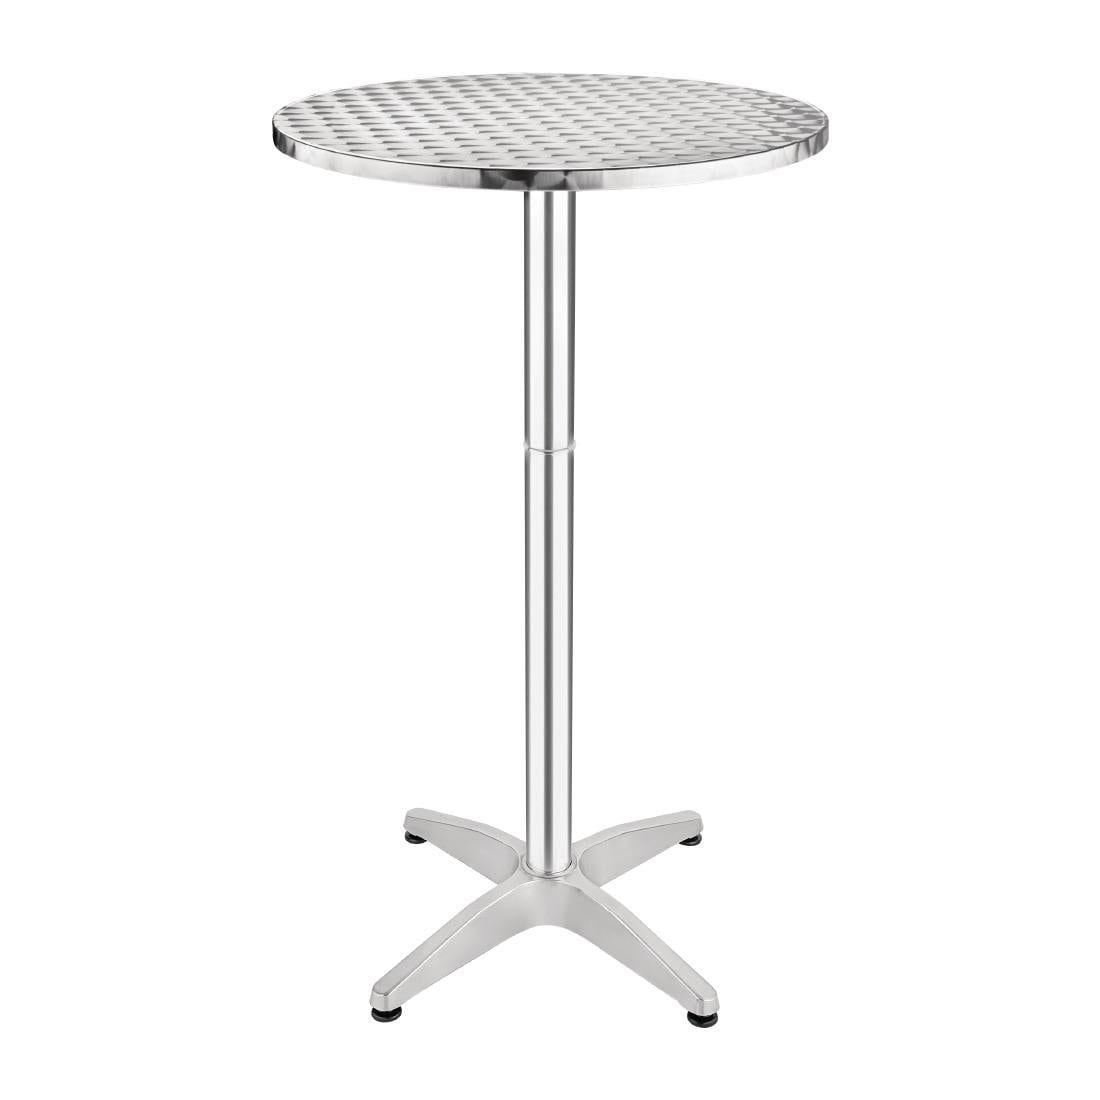 Krisco Tall Poseur Table Stainless Steel 105 Cm High Indoor